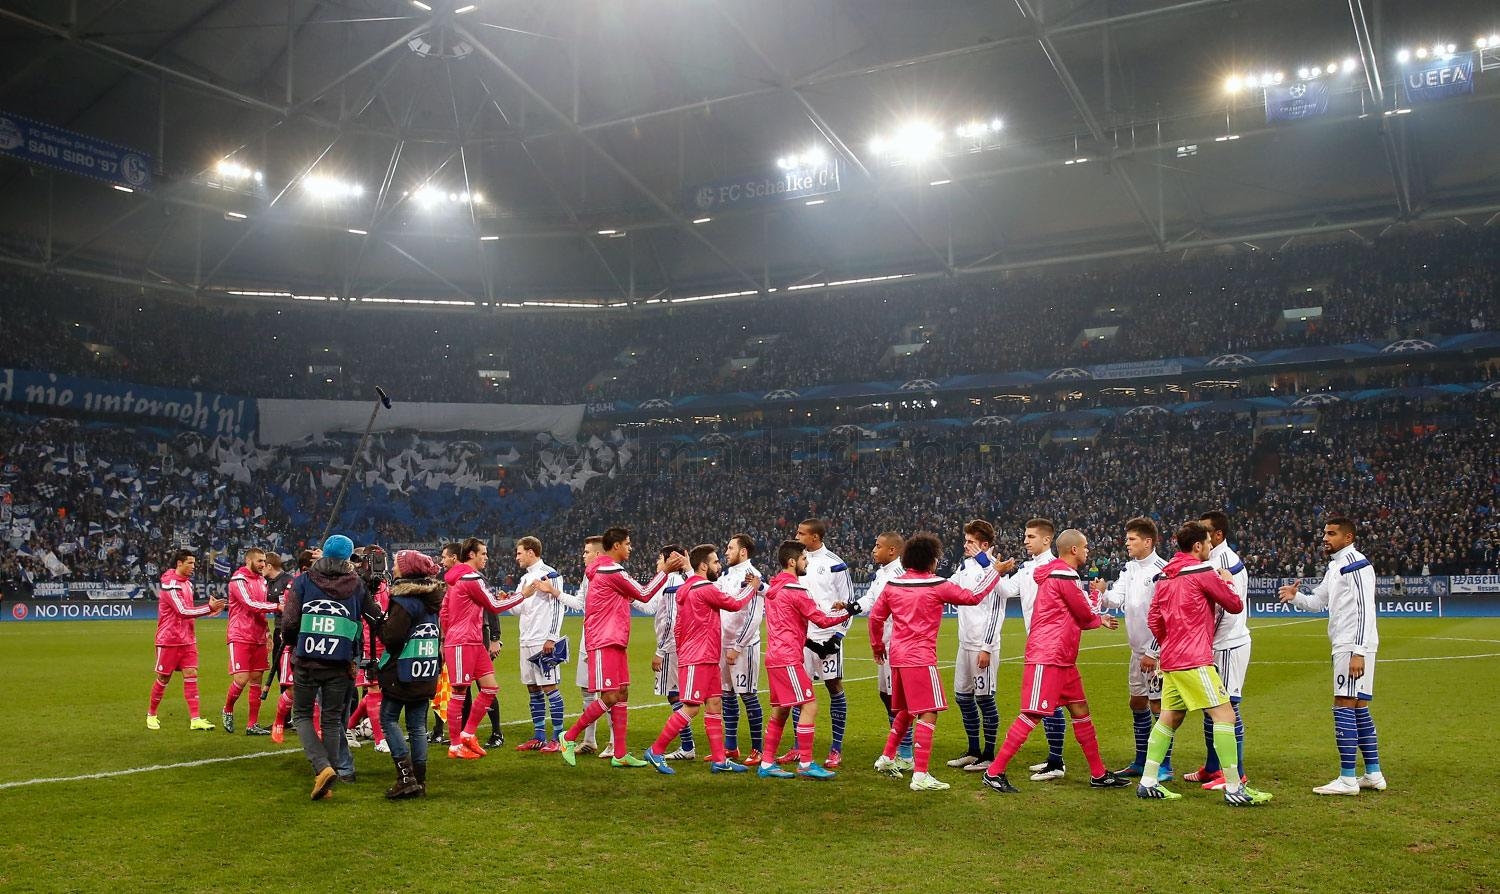 Real Madrid - Schalke 04 - Real Madrid - 18-02-2015